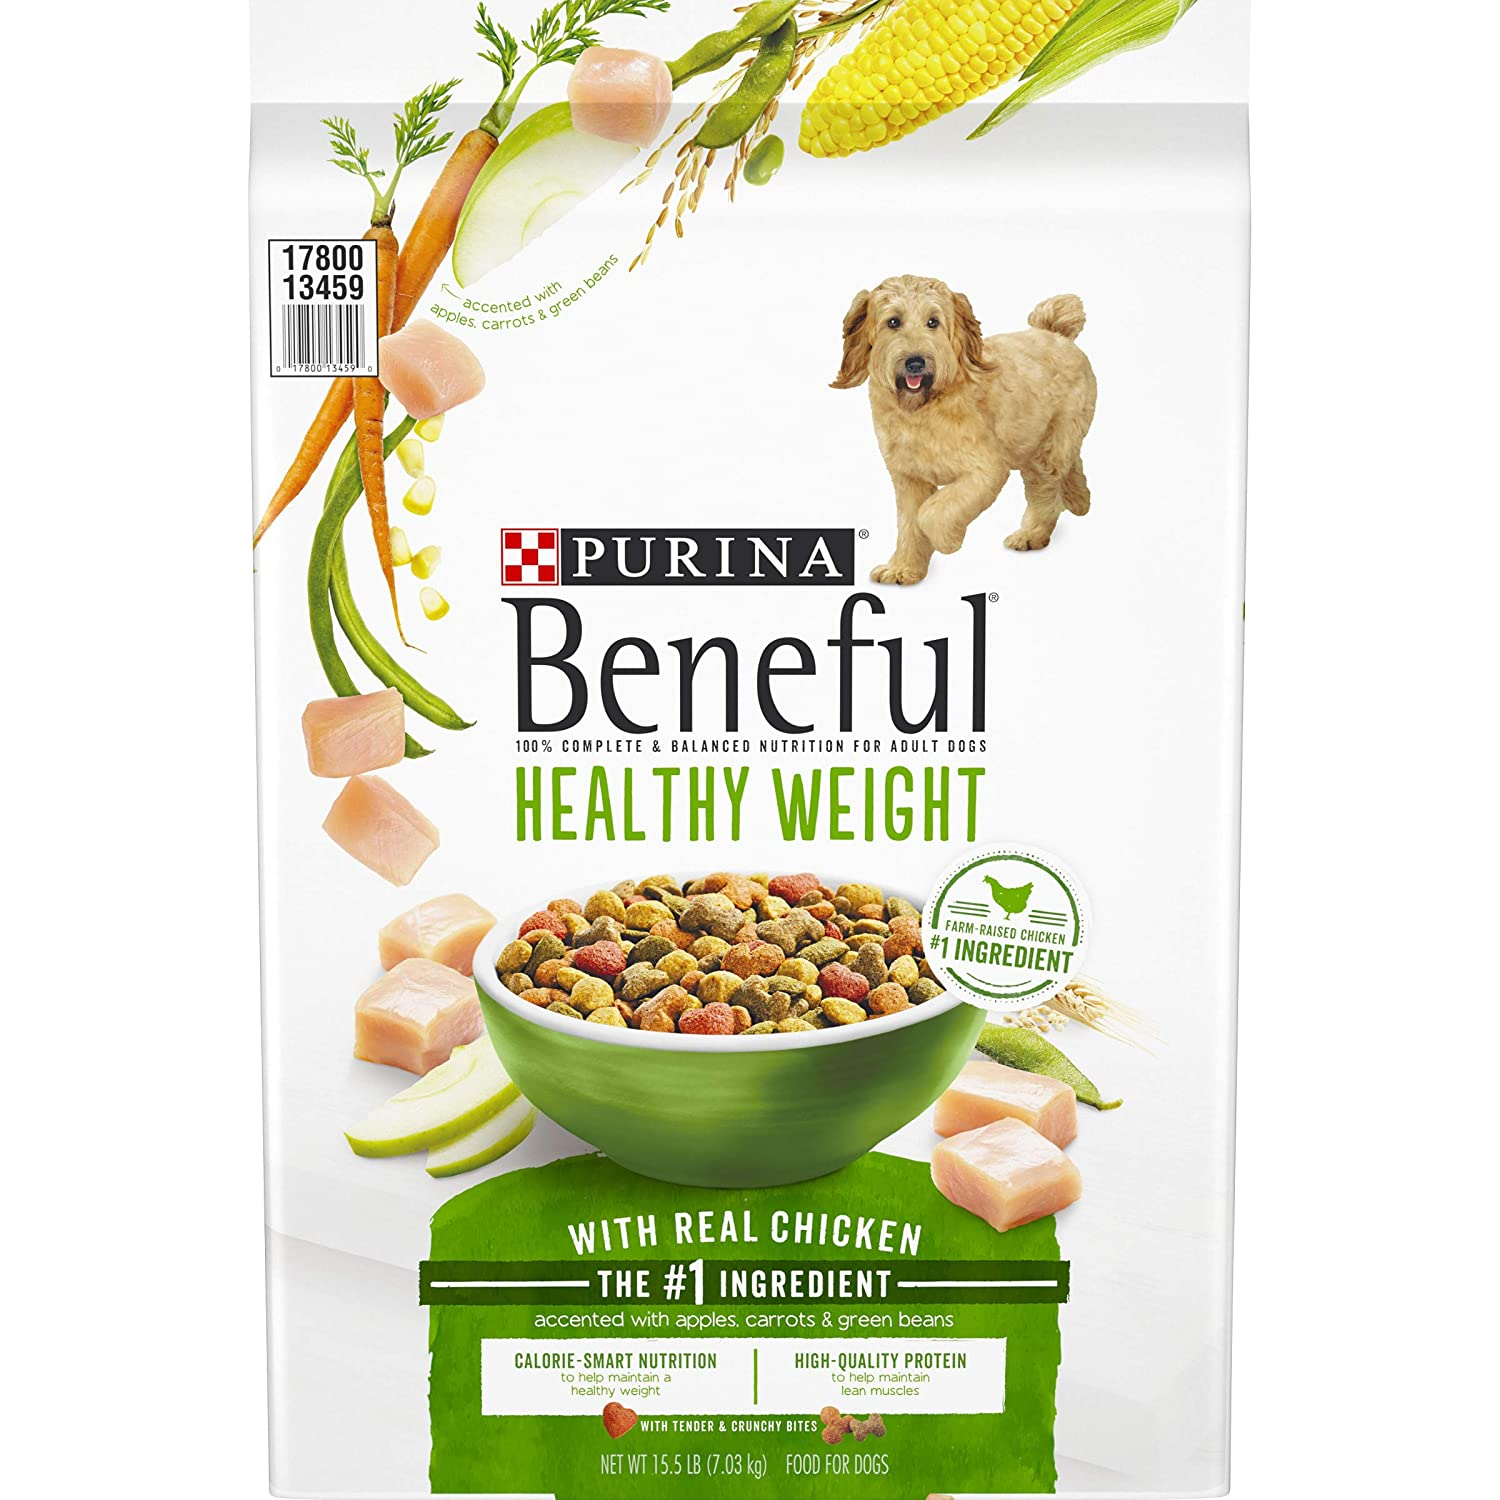 4. Purina Beneful Healthy Weight Dry Dog Food